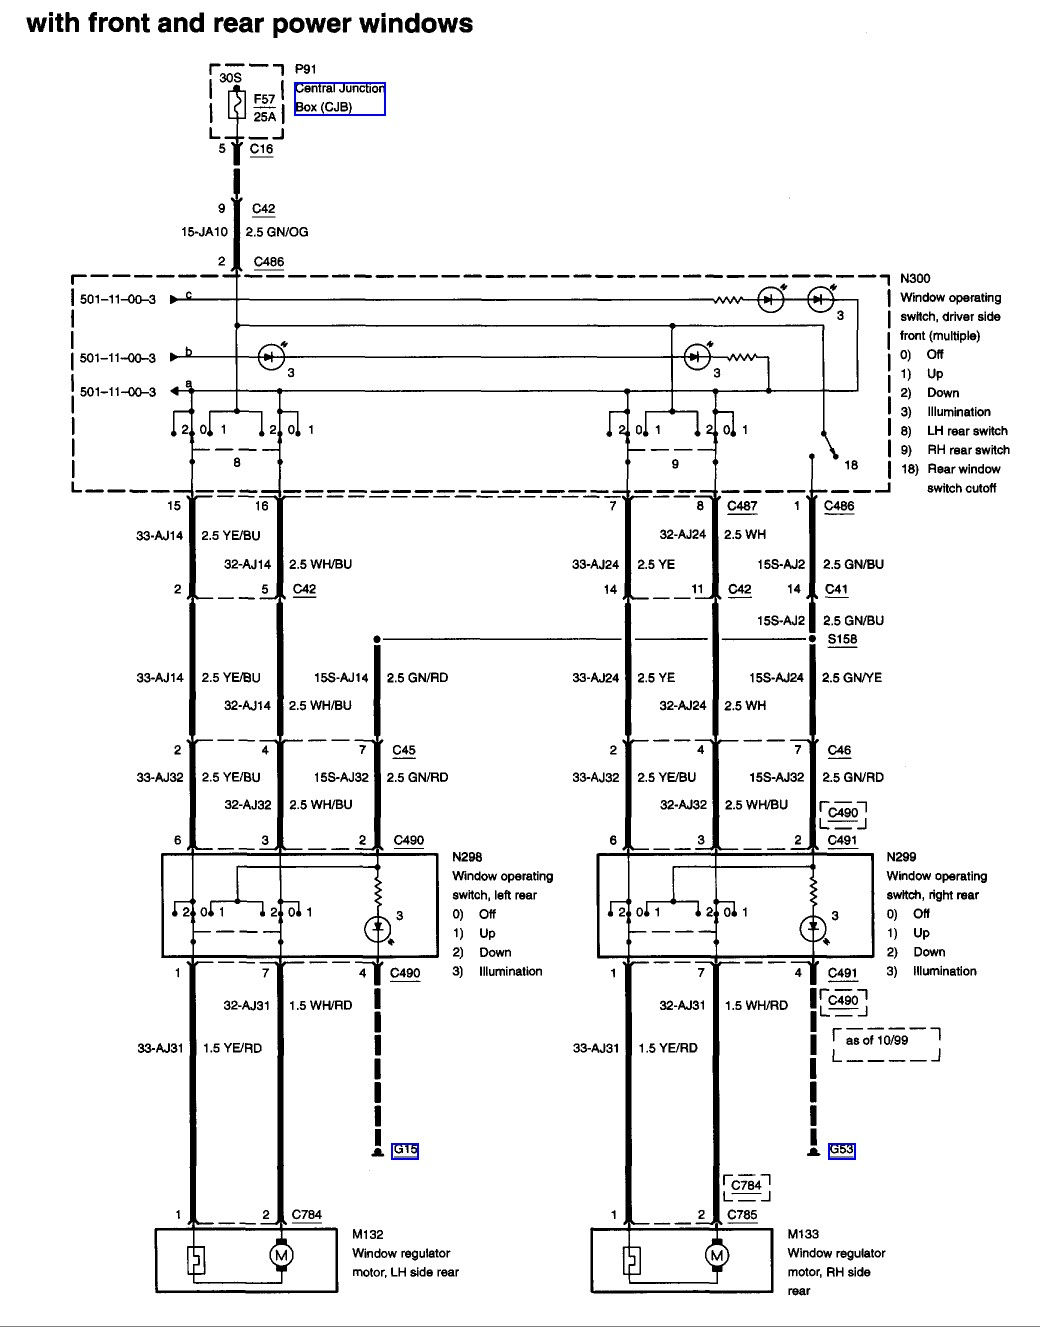 Ford F150 Power Window Switch Wiring Diagram Electrical Toyota 4runner Mirror Inspirational Image Specialty Windows